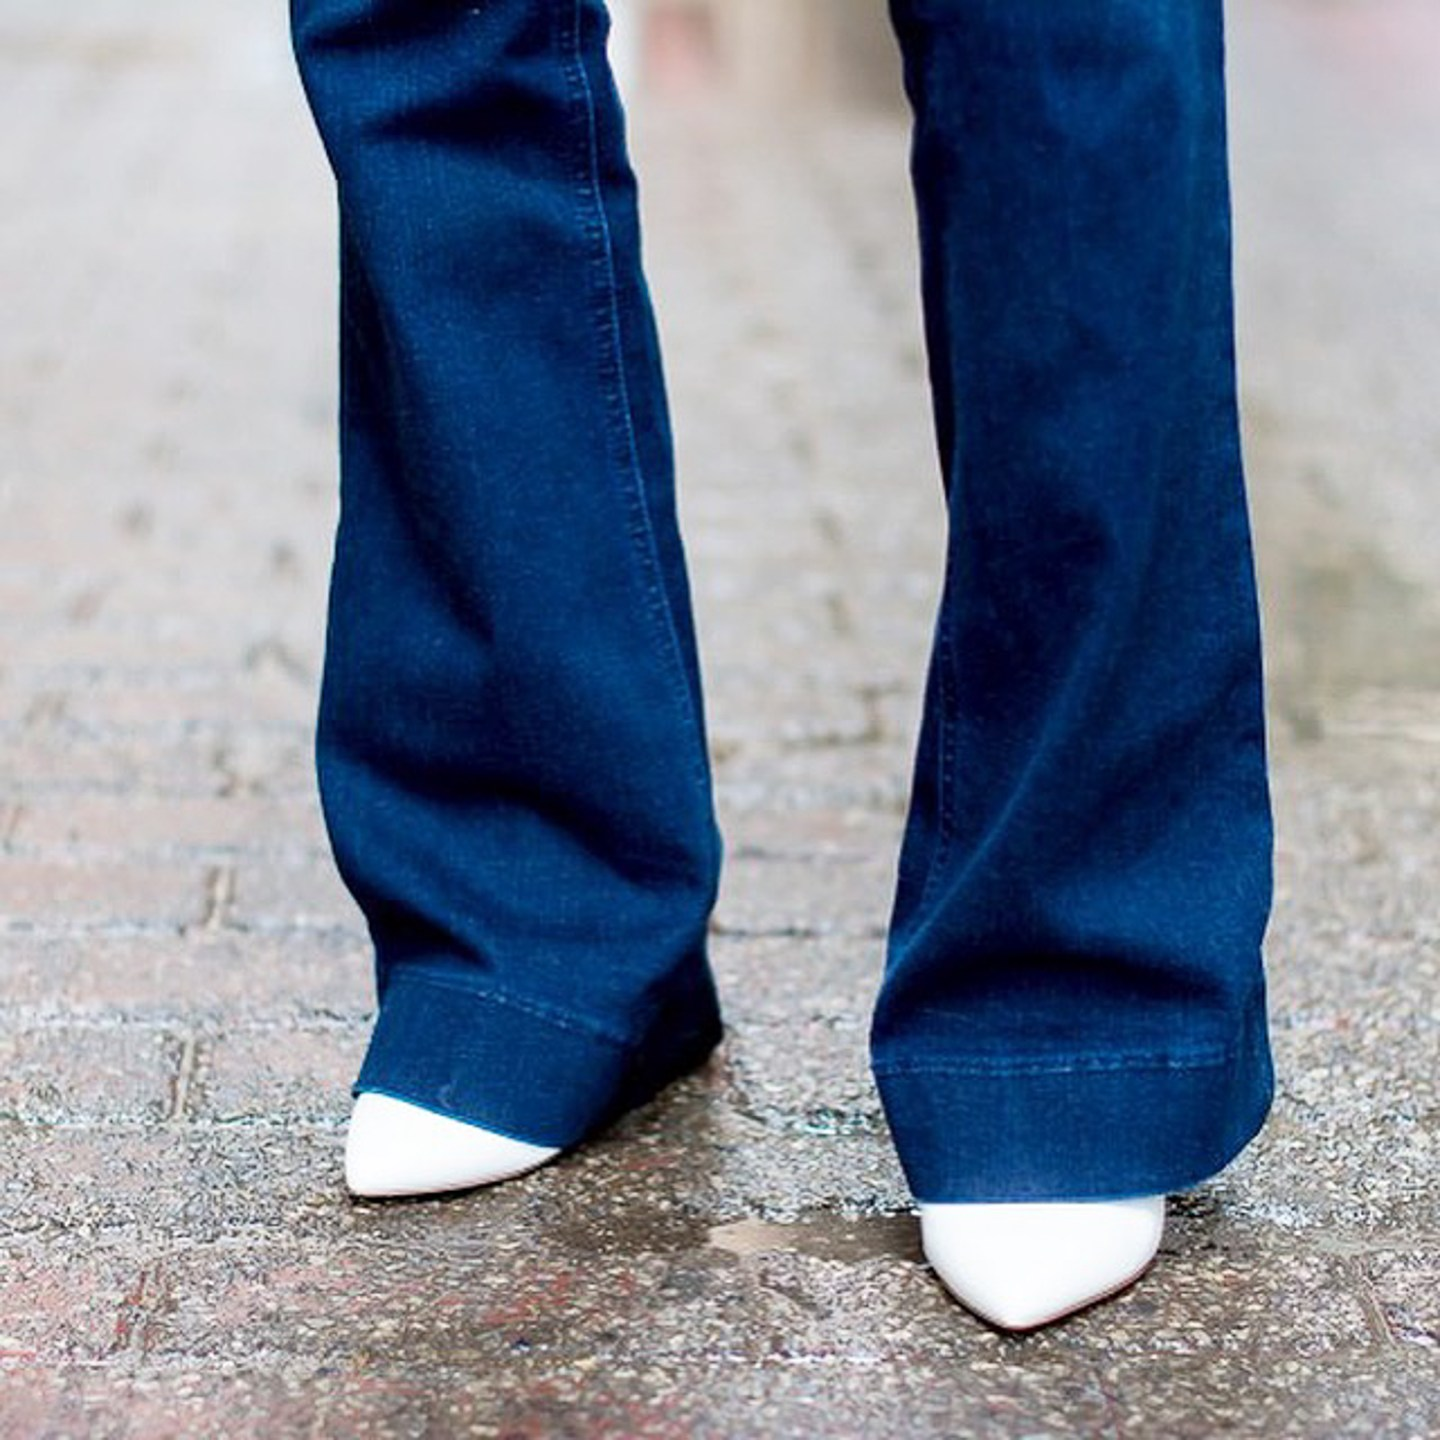 flared-dark-wash-jeans-and-white-pumps